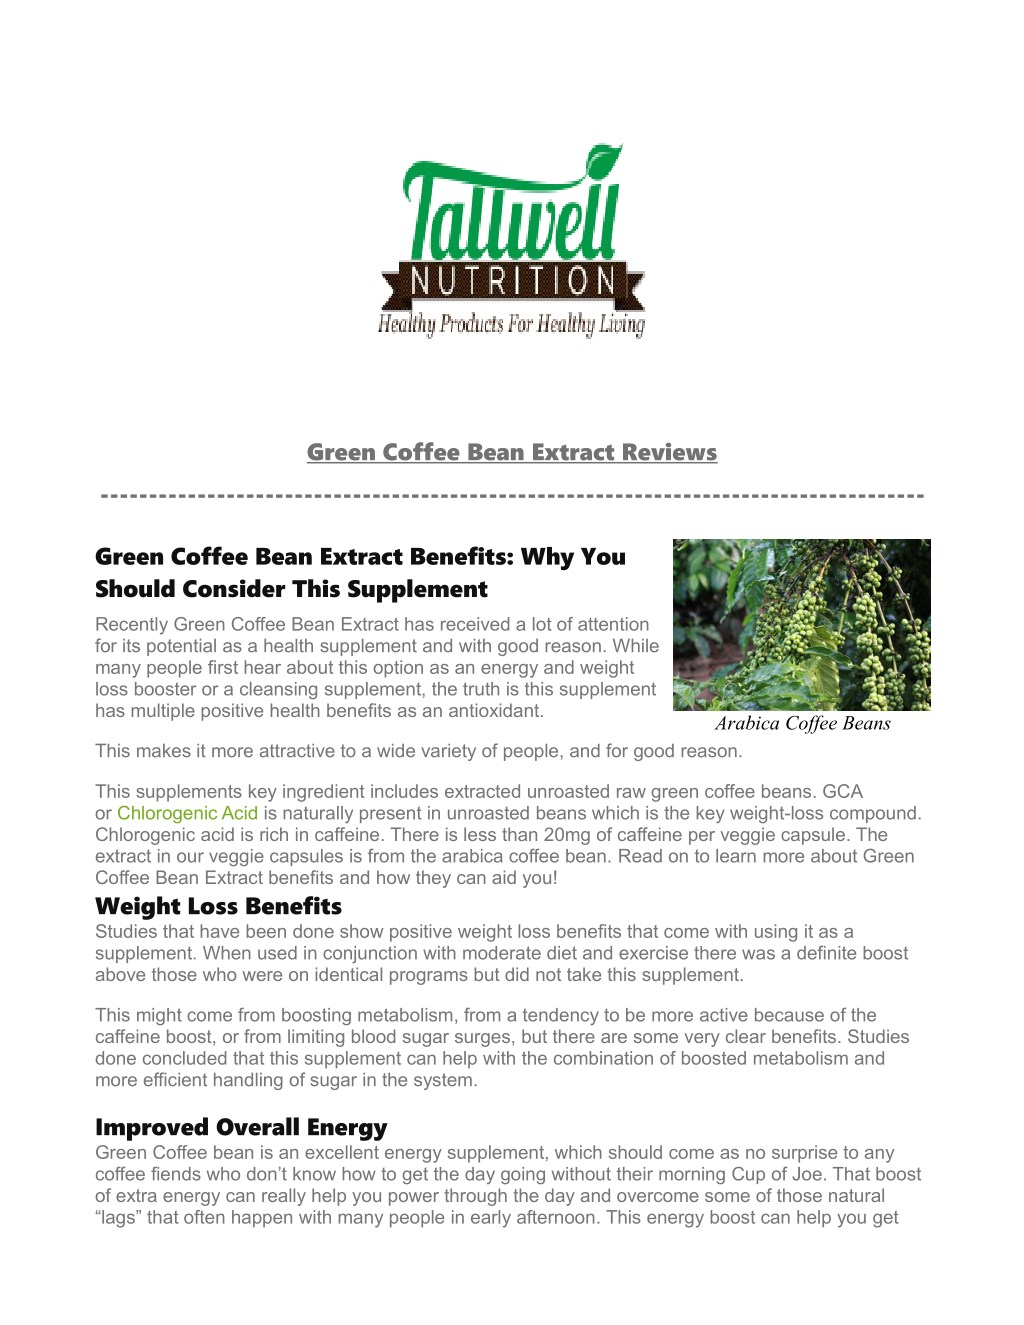 Ppt Green Coffee Extract Reviews Powerpoint Presentation Free